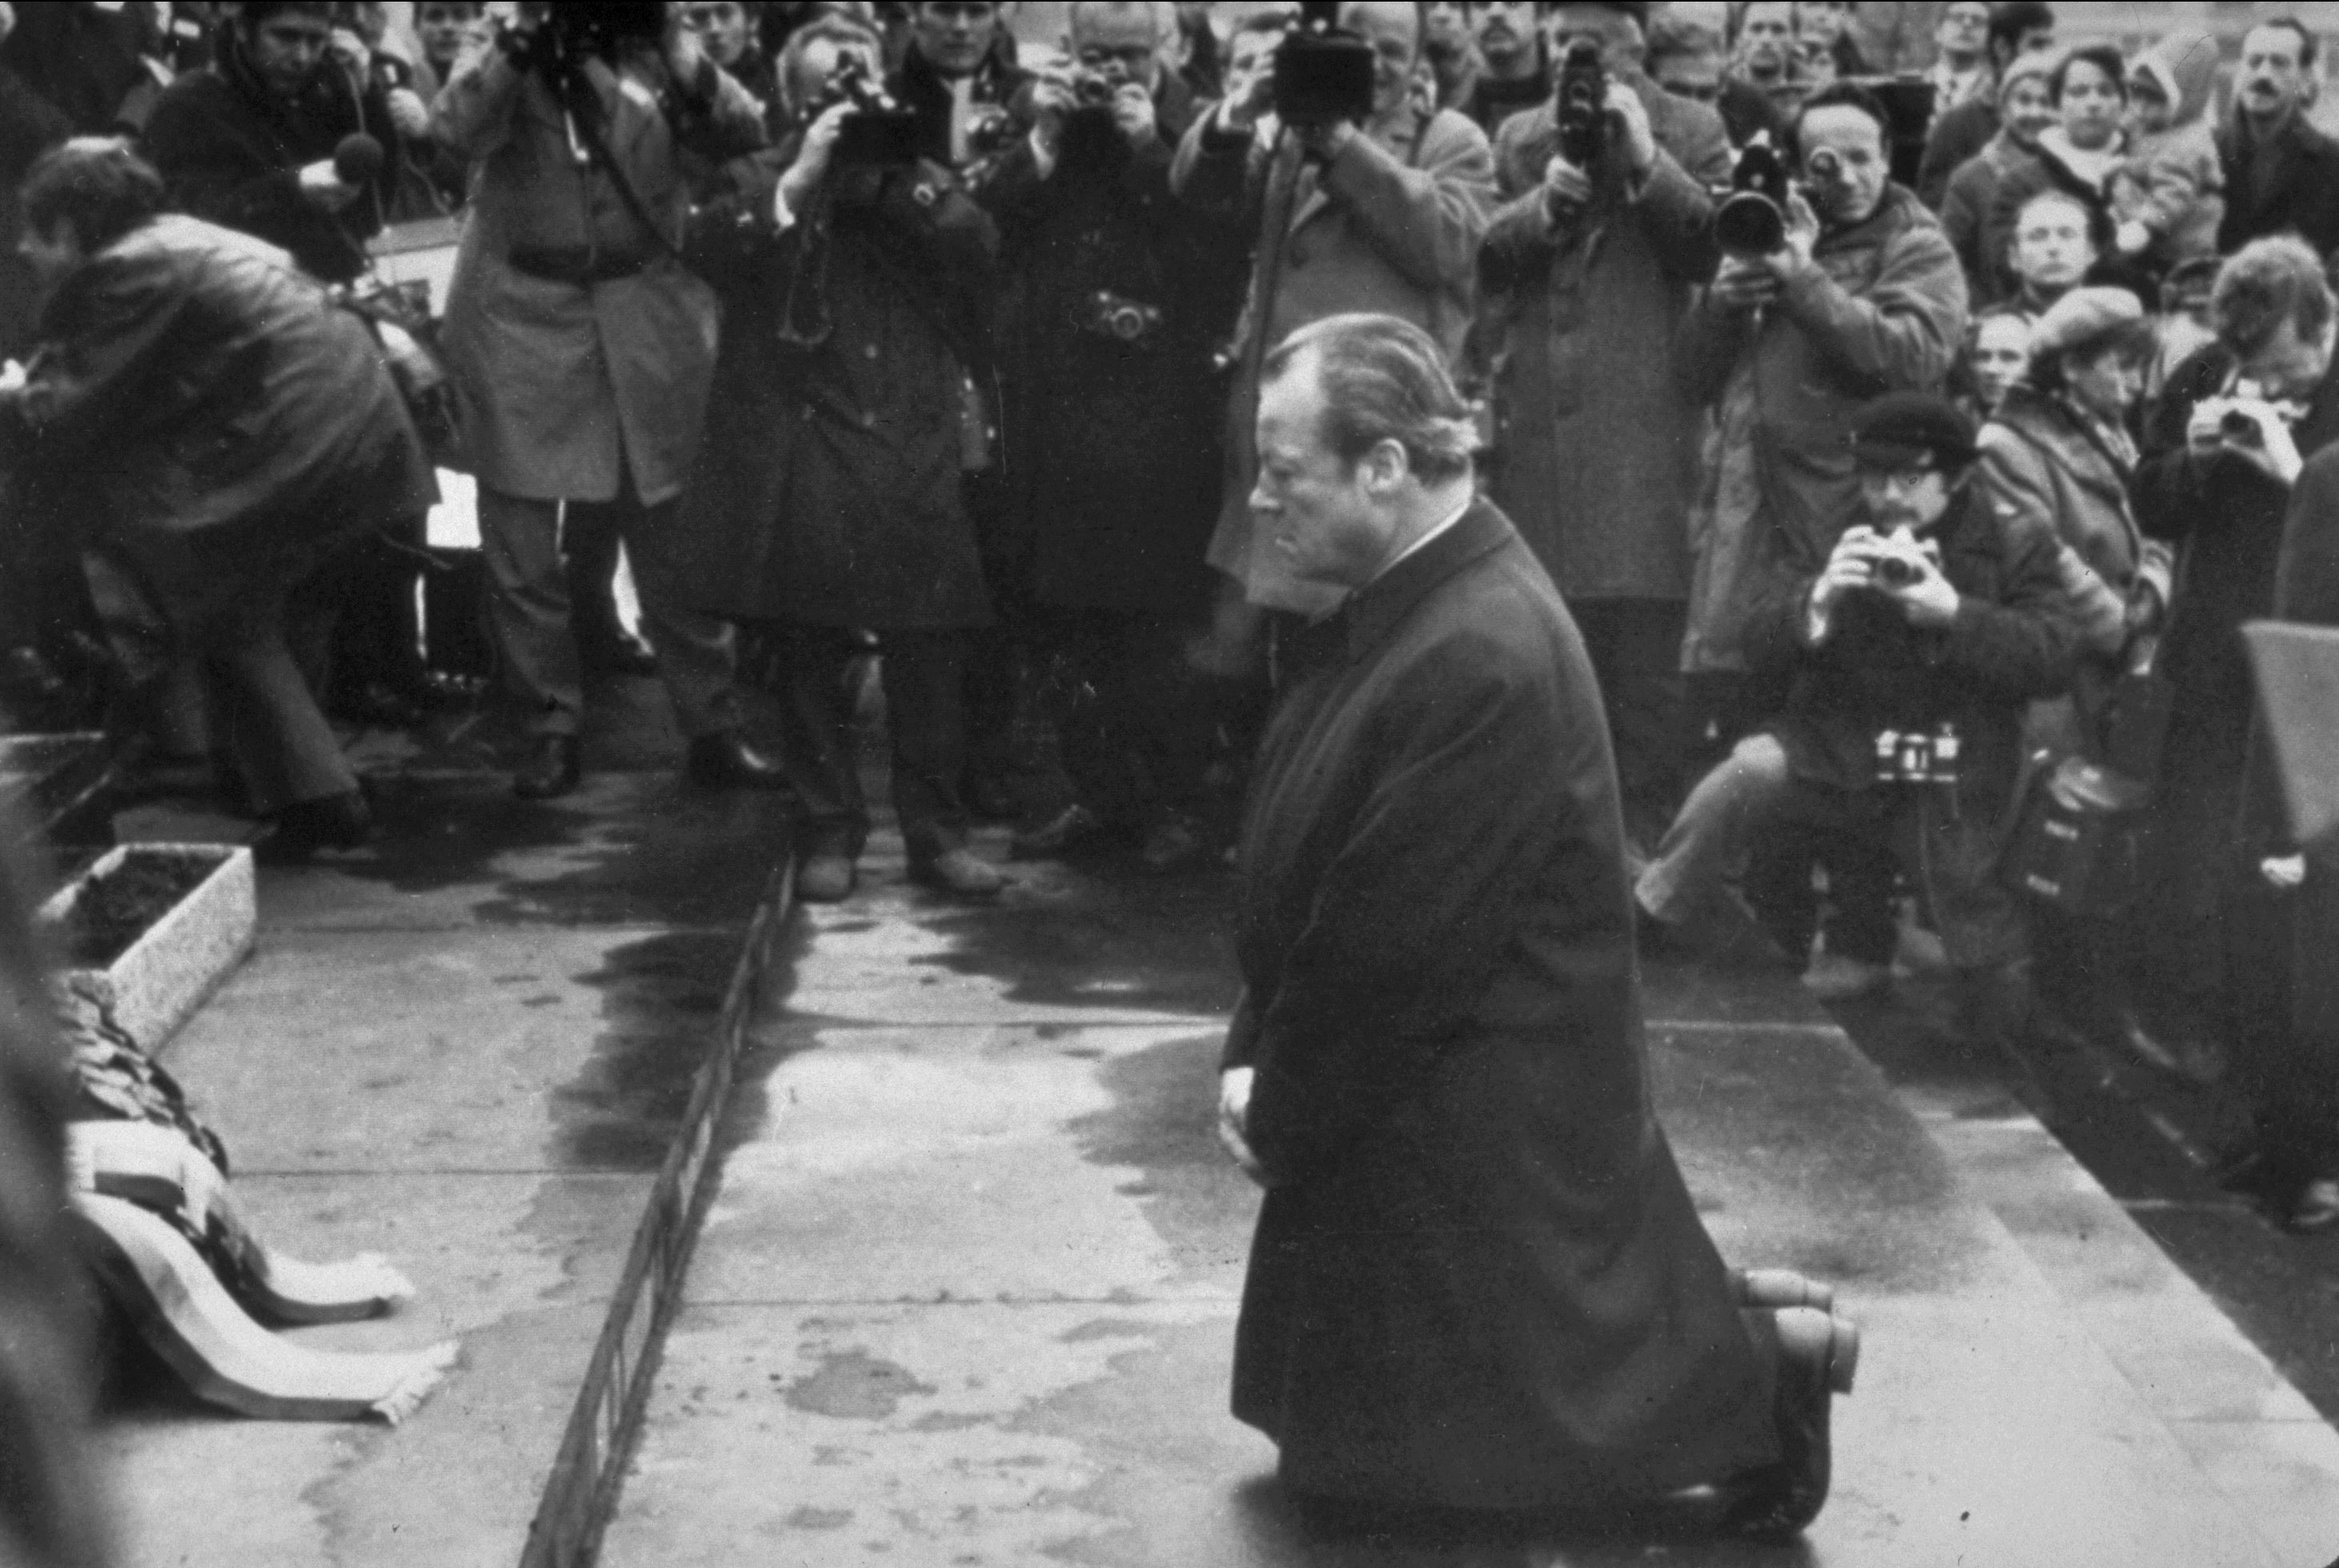 West German Chancellor Willy Brandt kneels in the Warsaw Ghetto, December 7, 1970. (Associated Press)